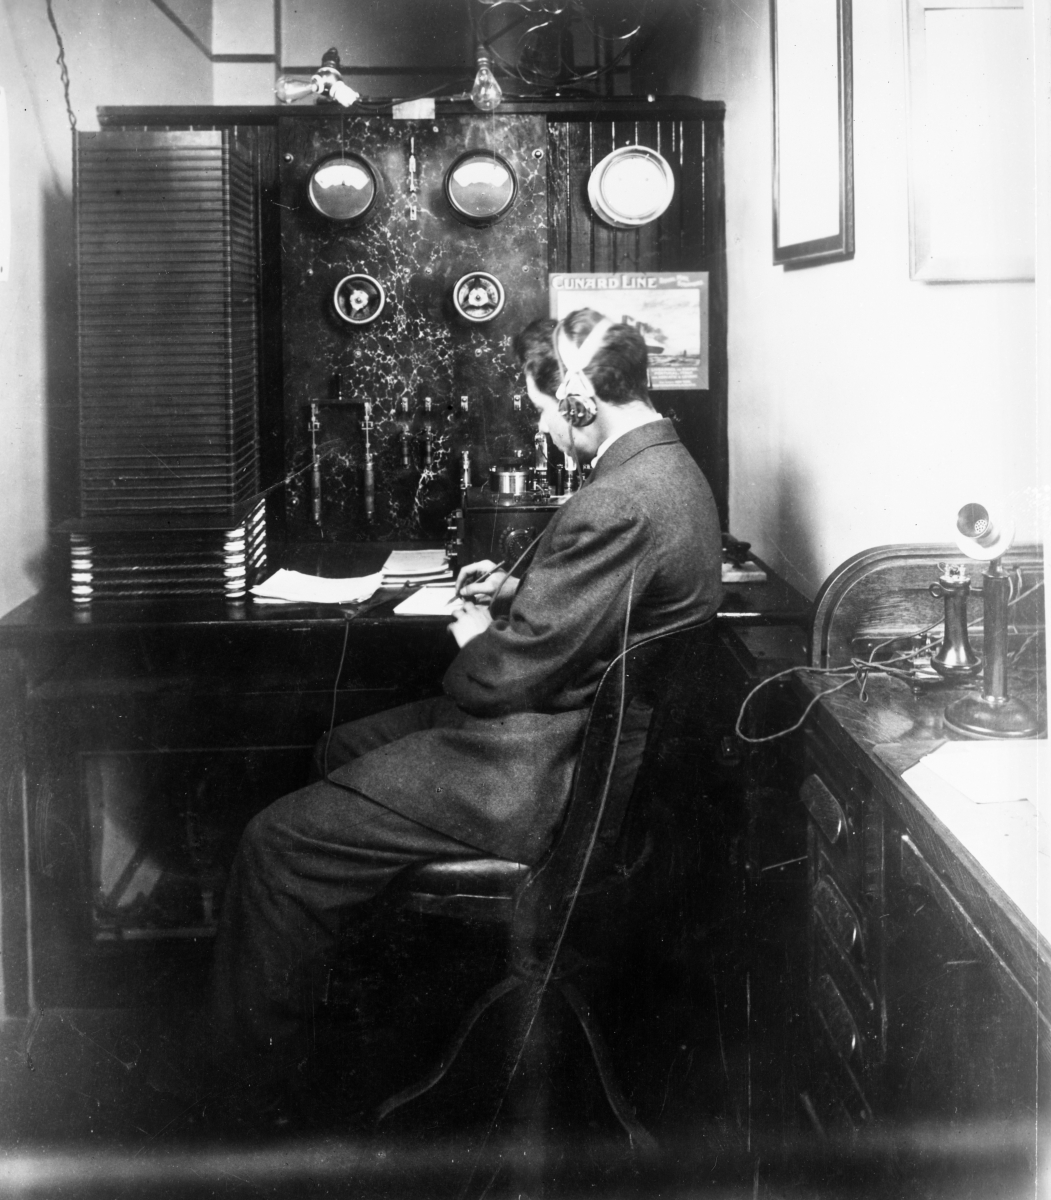 Sarnoff in 1912 working with headphones on